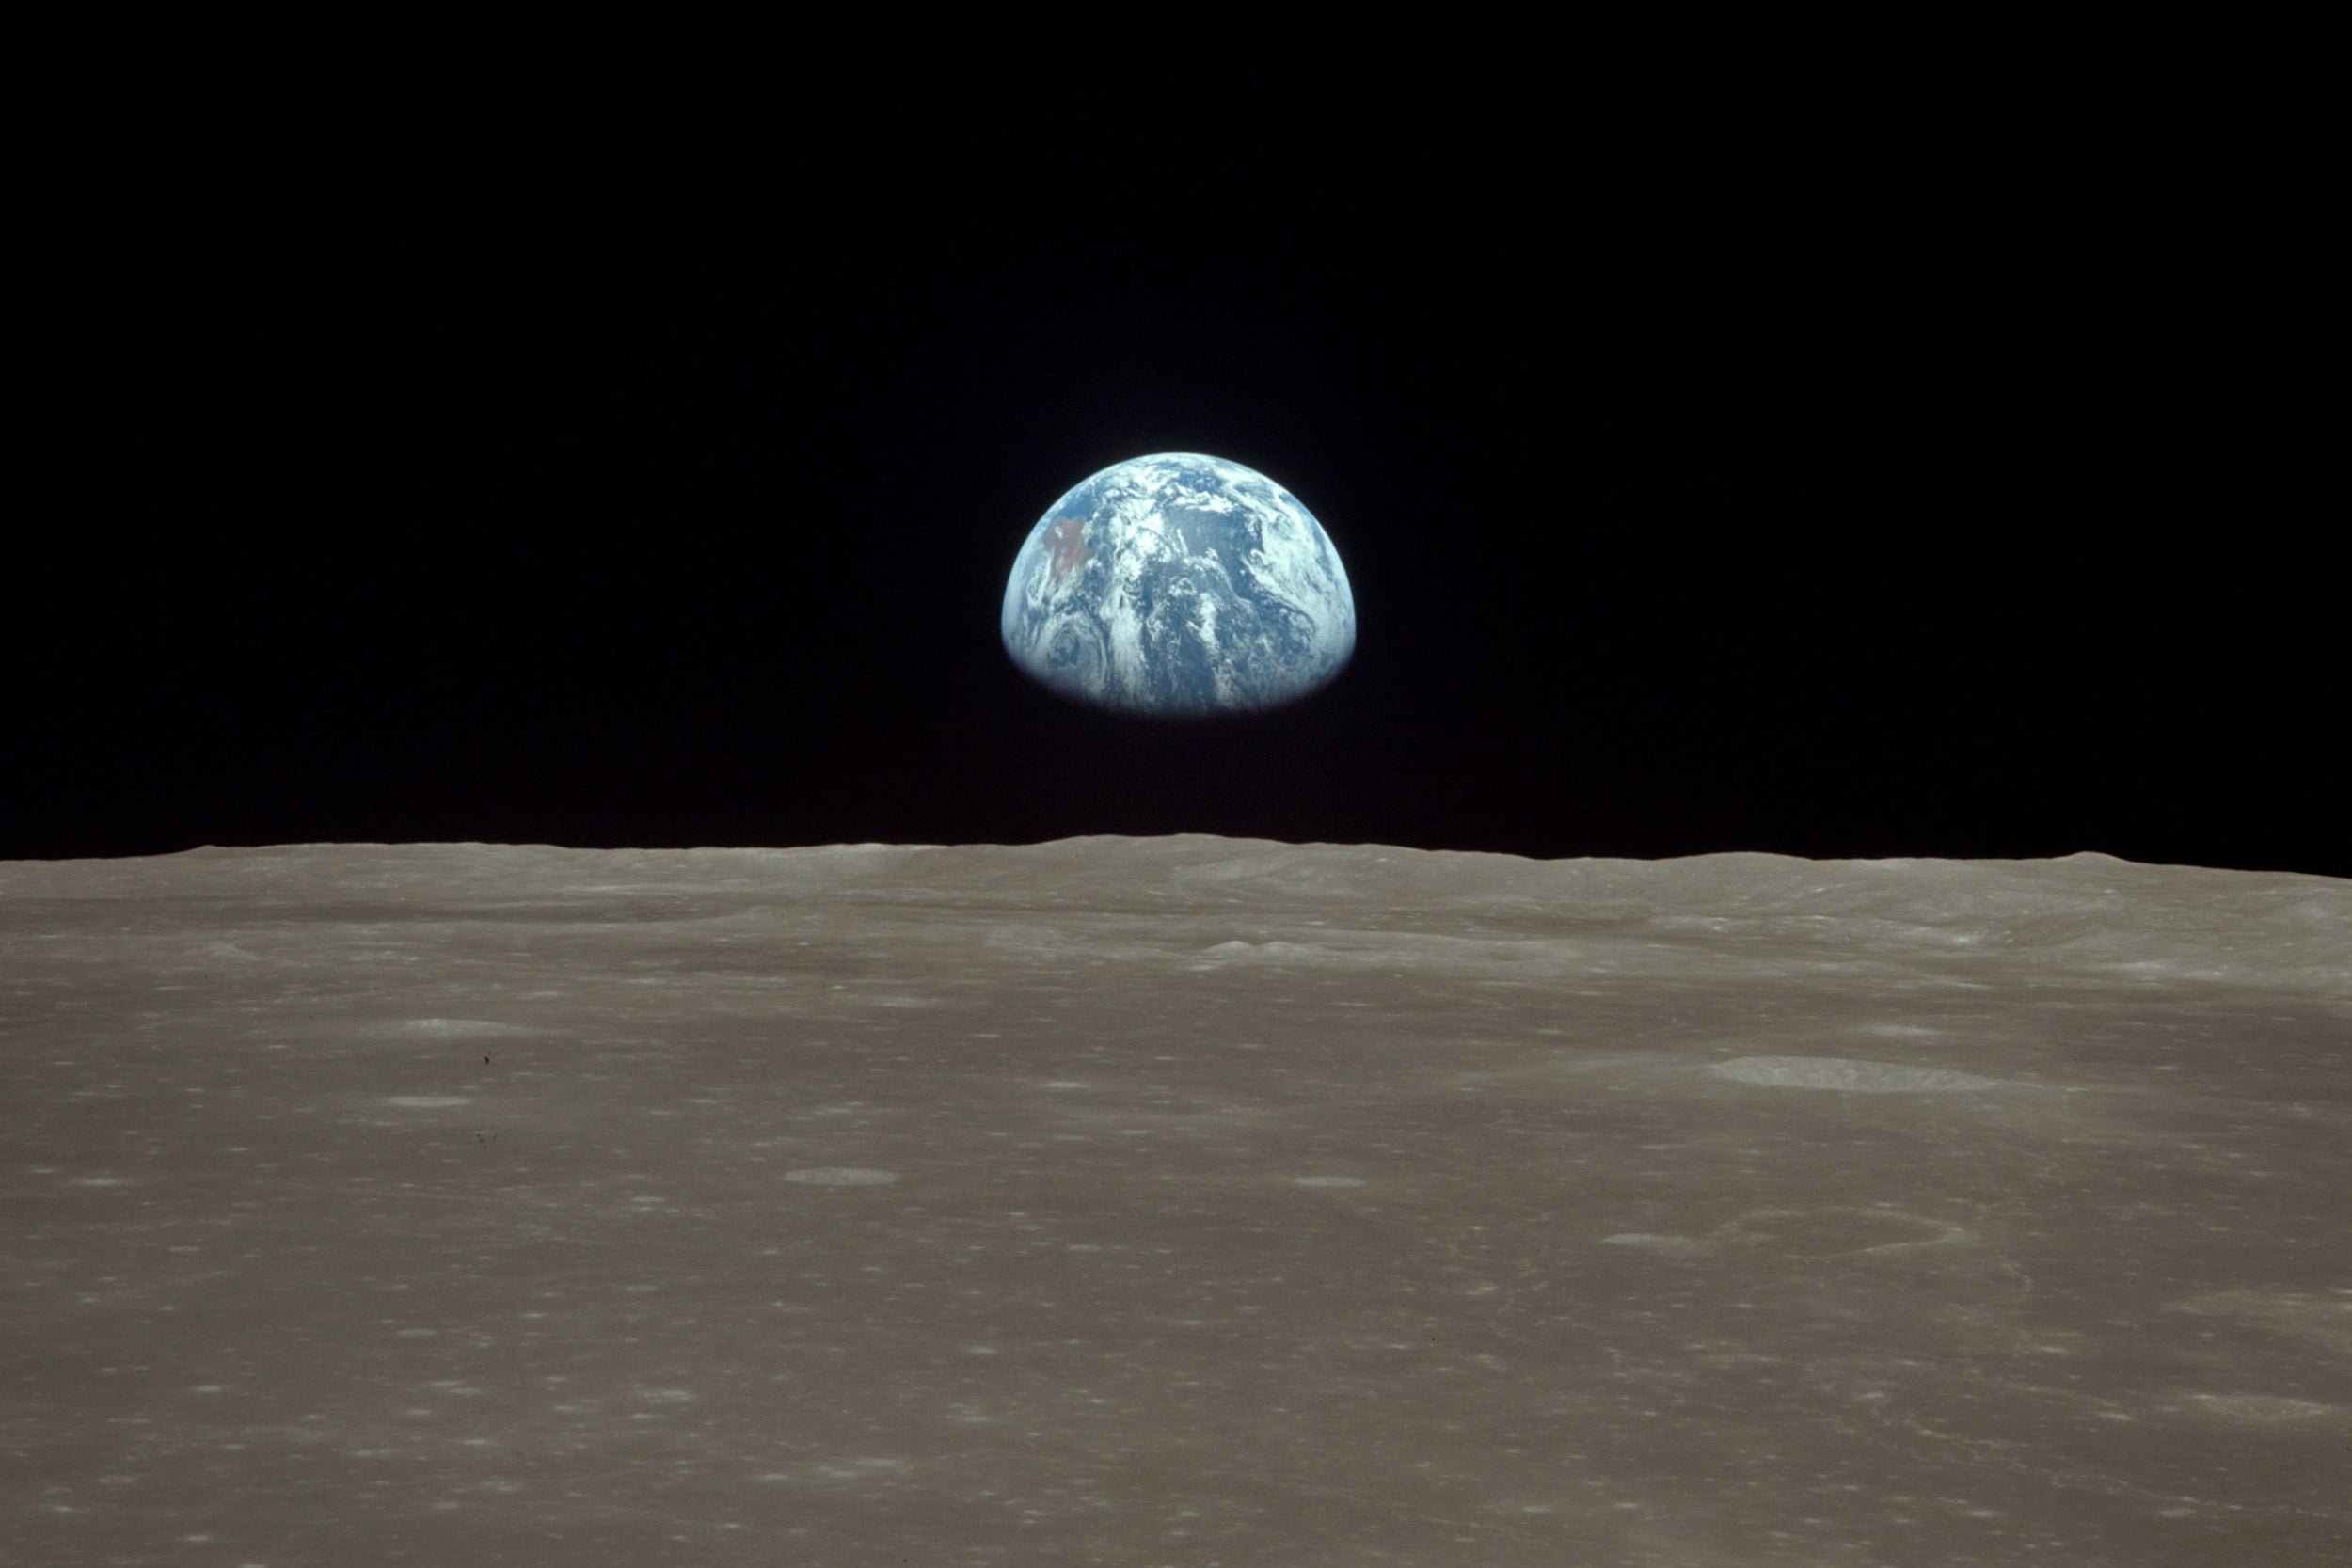 Earthrise viewed from lunar orbit.